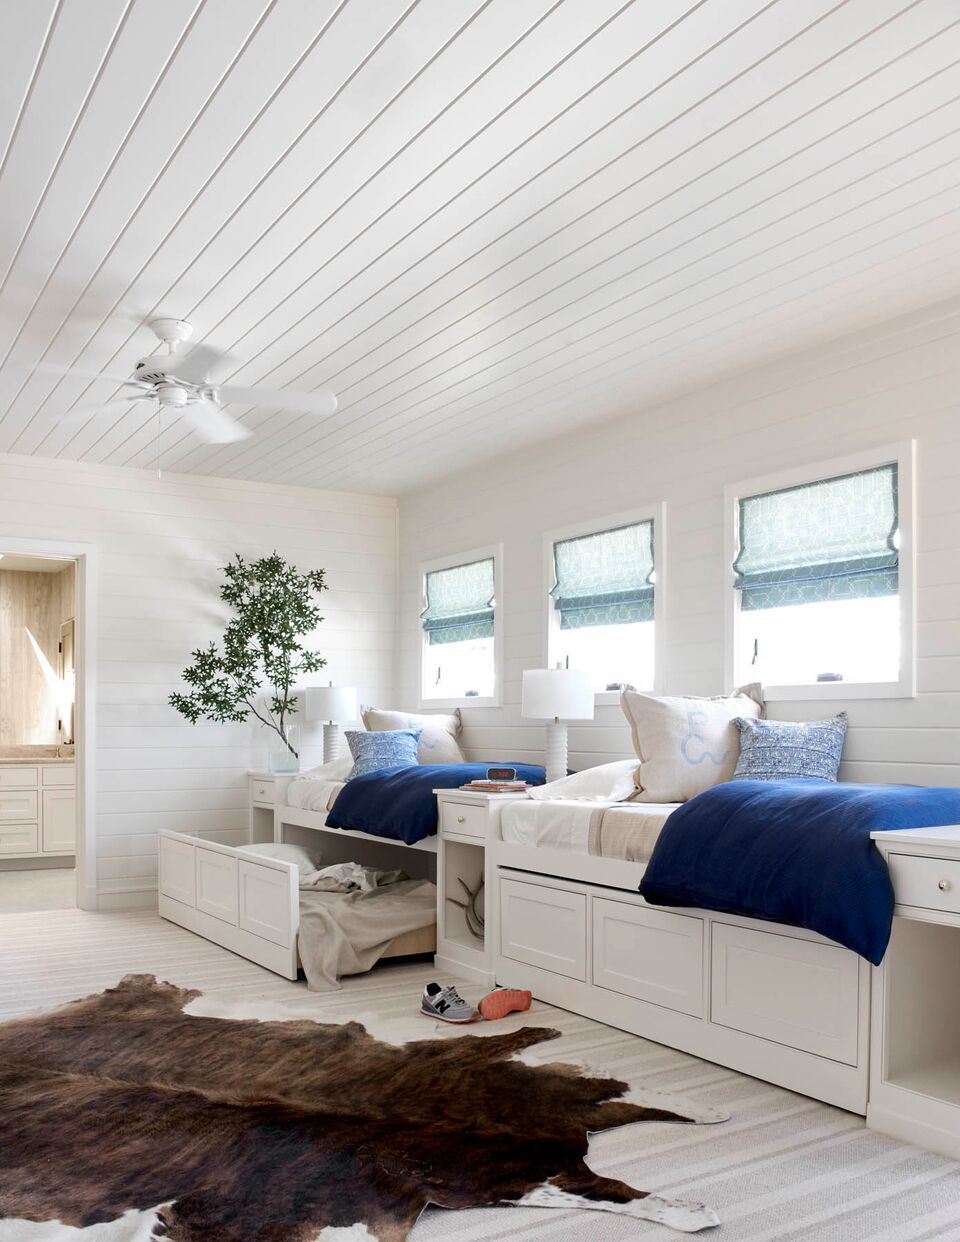 Bunk House For Kids Love The Shiplap Ceilings Design By